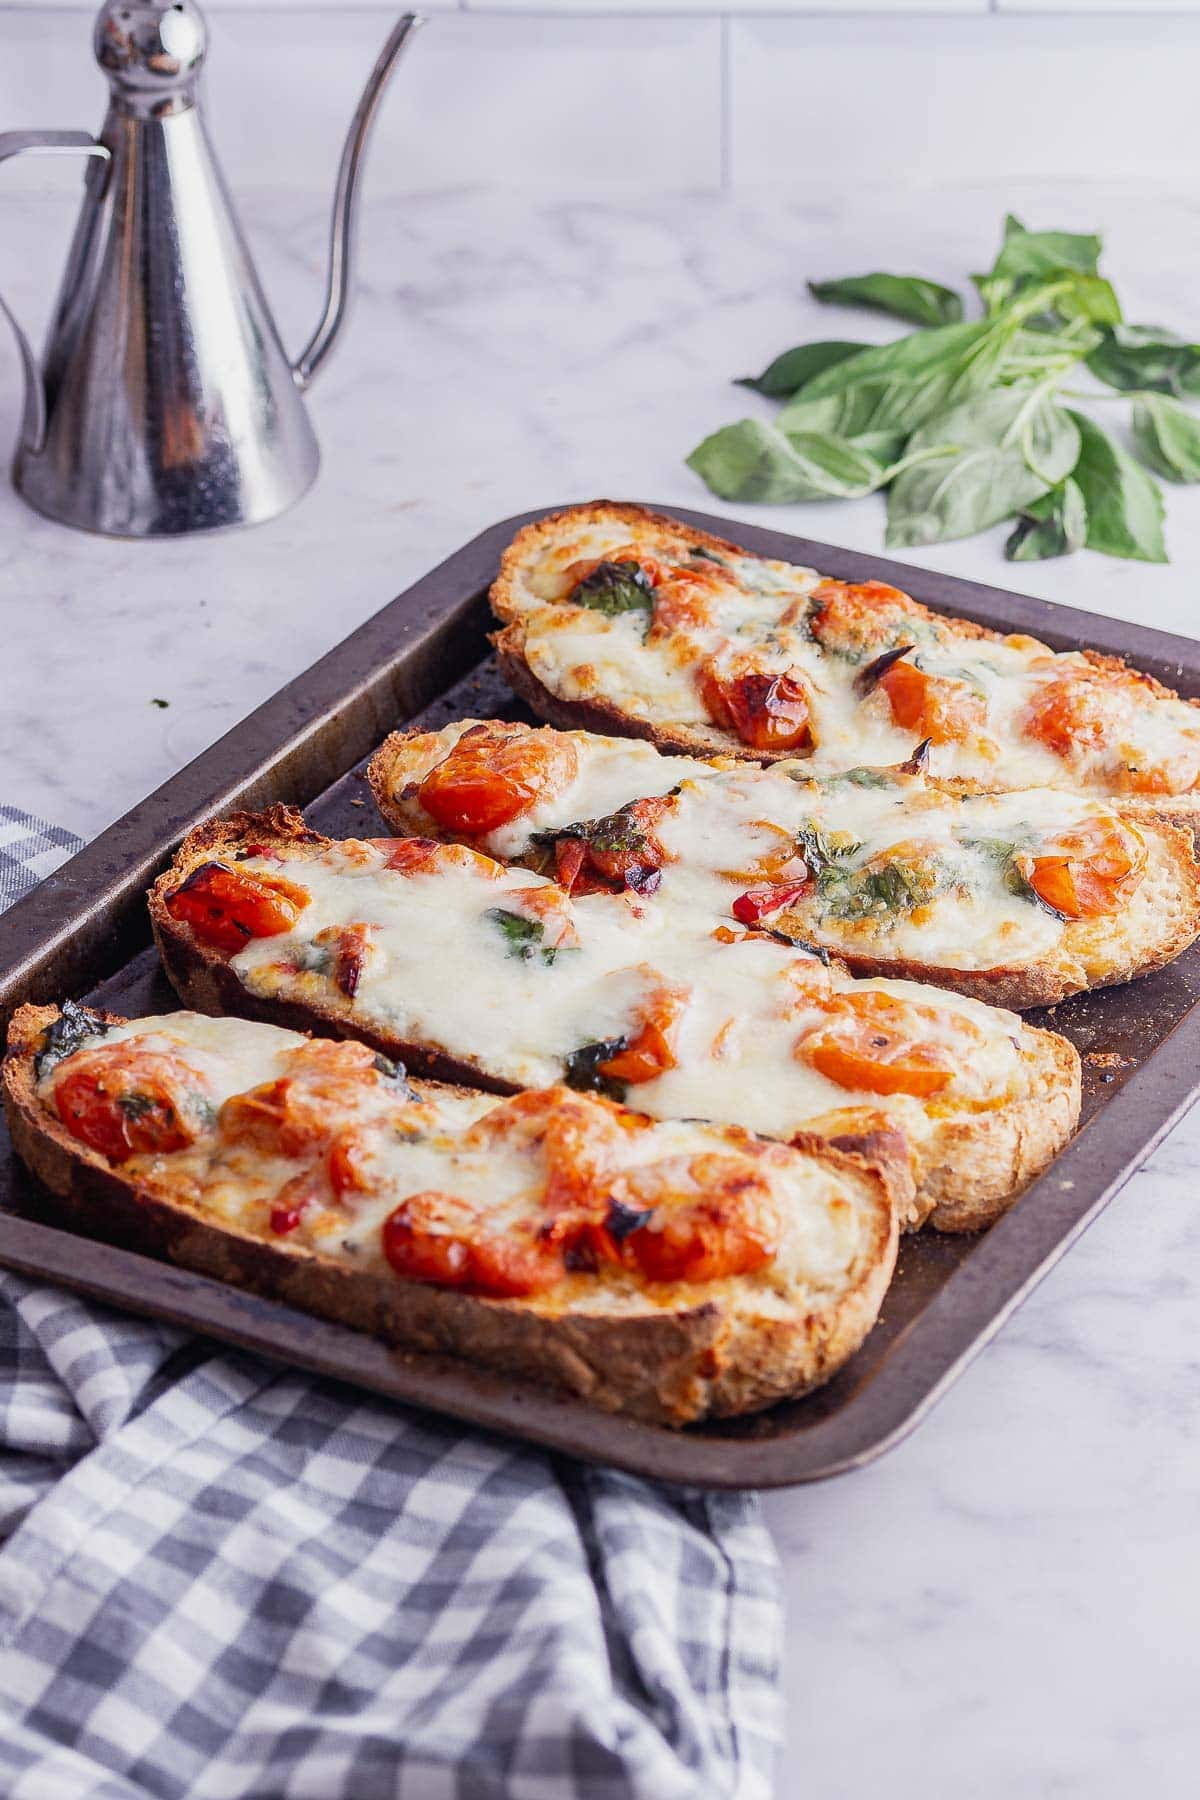 Tray of tomato toasts with mozzarella and basil on a marble surface